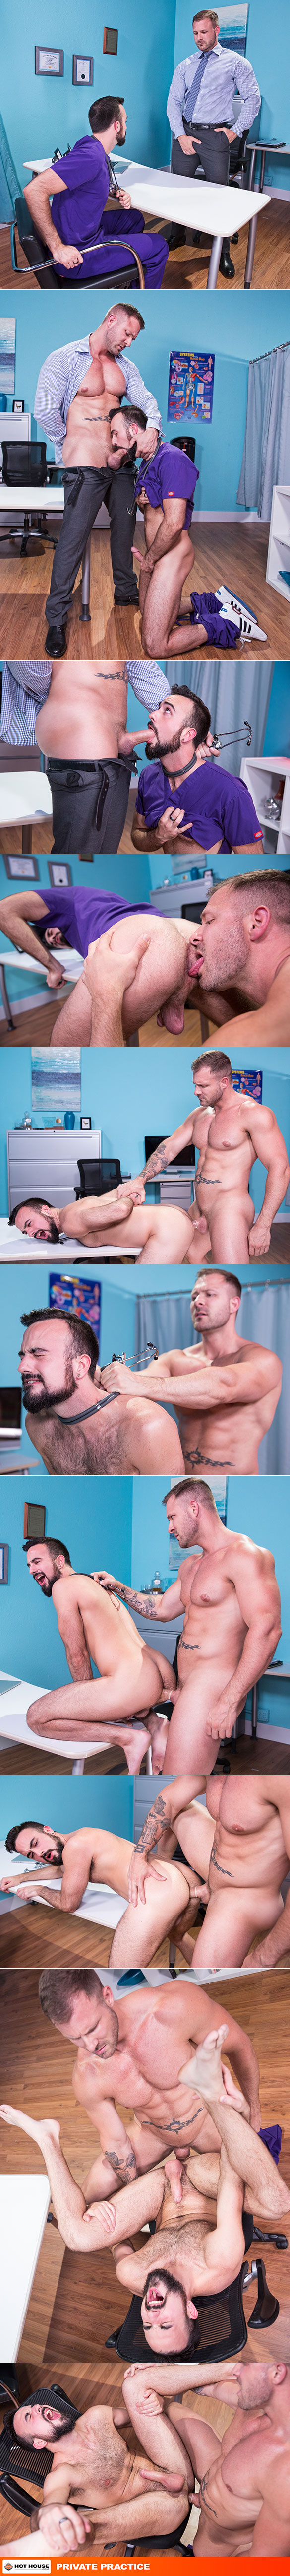 """NakedSword: Hot House Video """"Private Practice"""""""